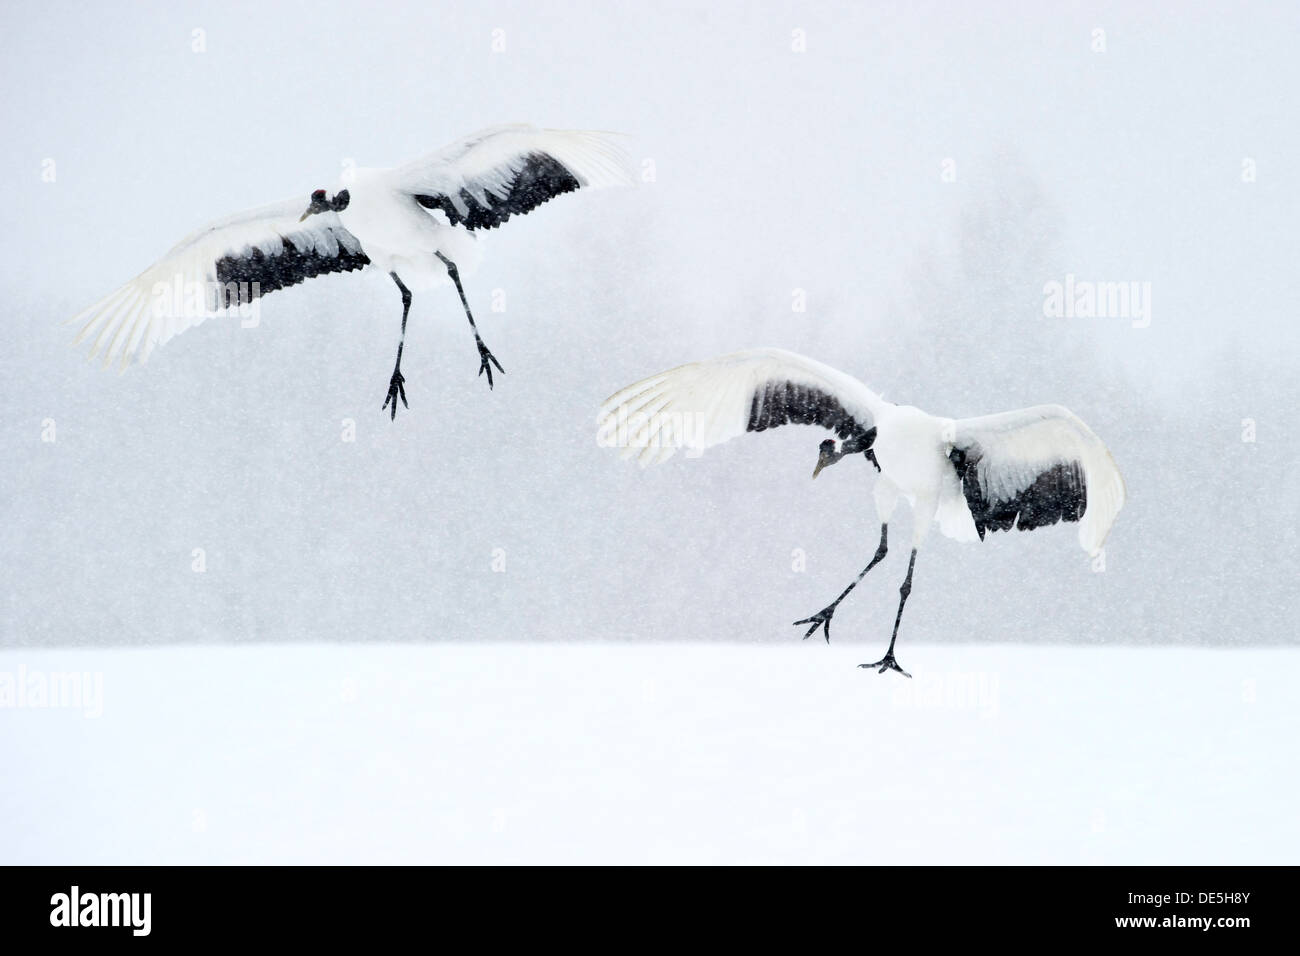 Japanese cranes landing on snow for courtship - Stock Image